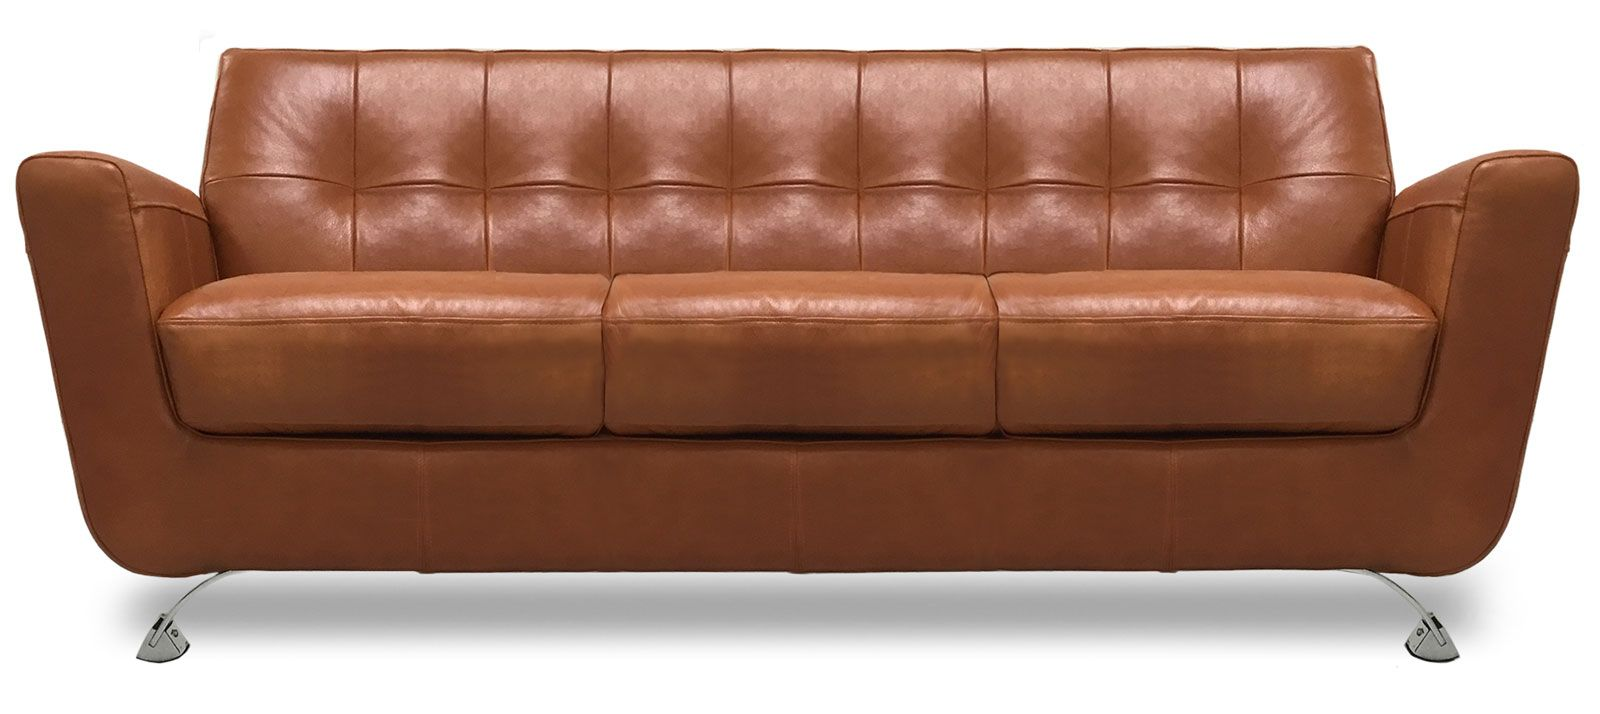 Leather Sofa And Chair With Ottoman Sofa Menzilperde Net